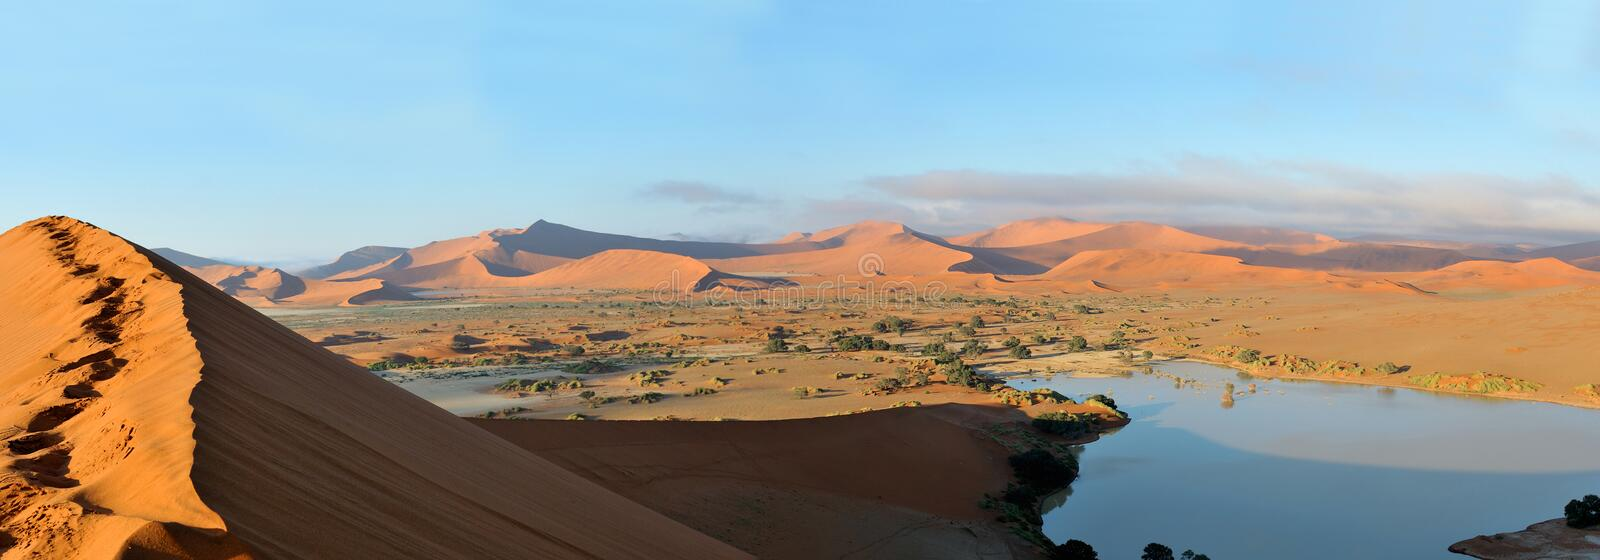 Deadvlei and Sossusvlei panorama 4 royalty free stock photography